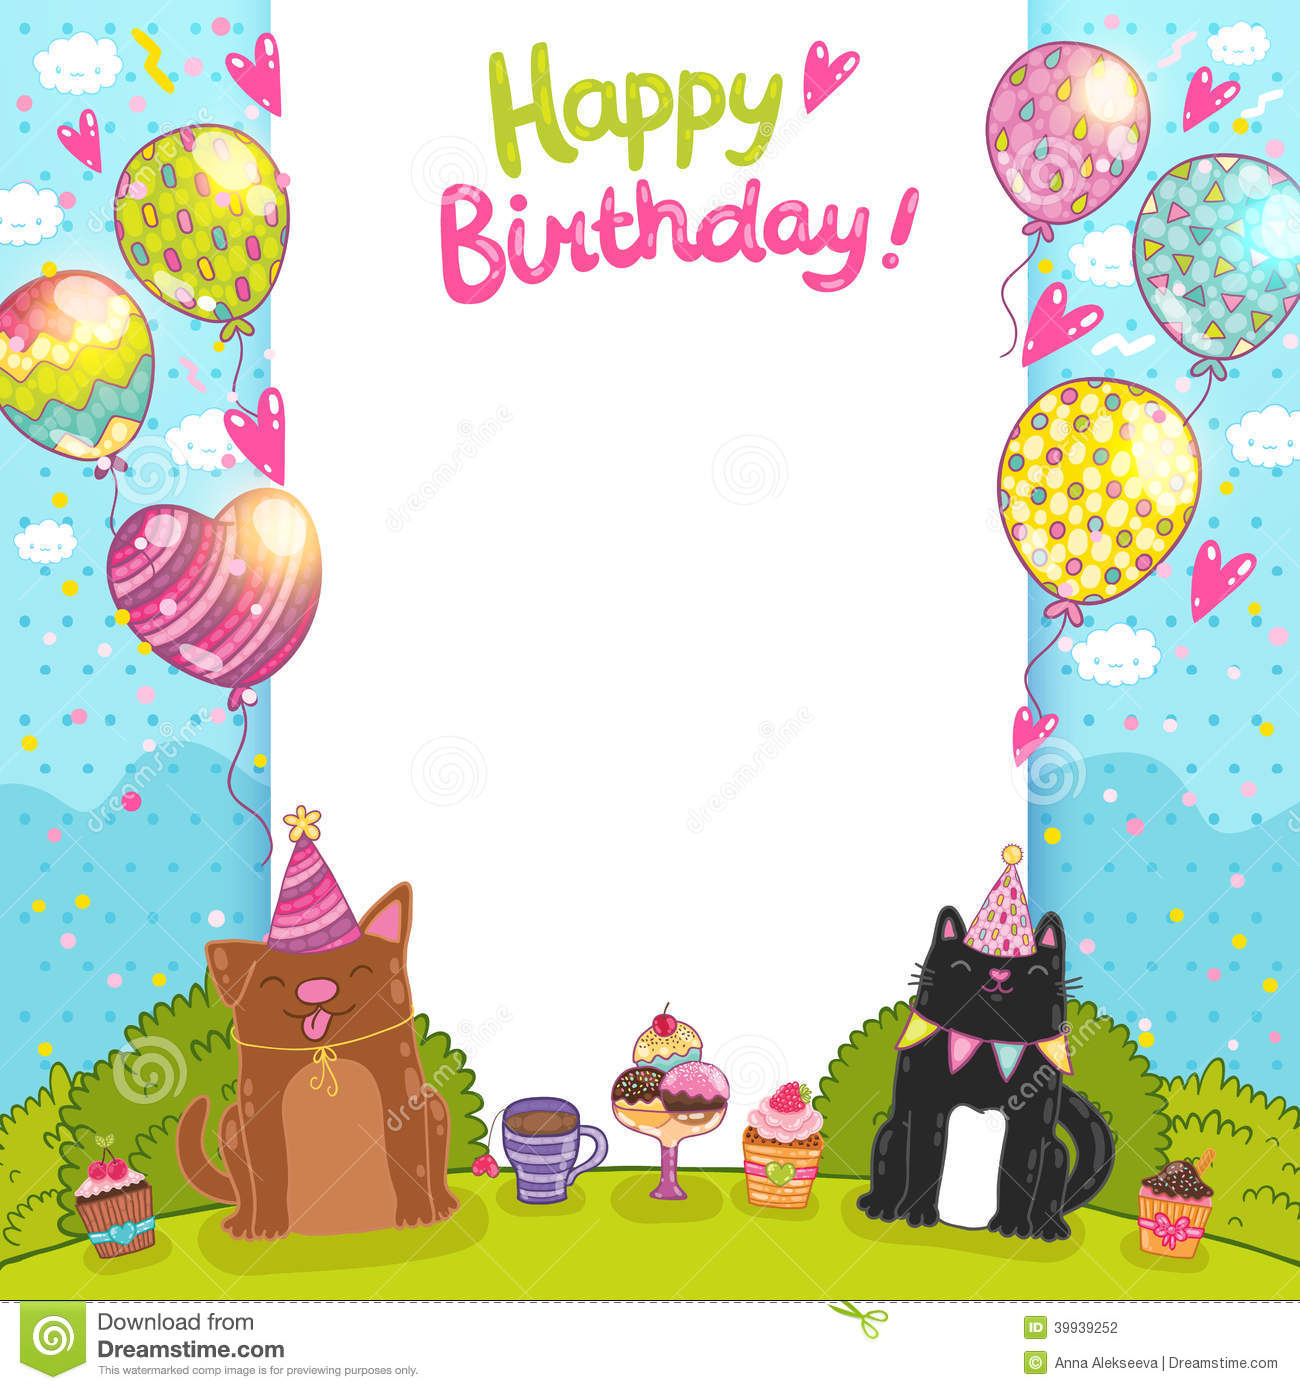 birthday background layout ; happy-birthday-background-cat-dog-card-cupcakes-39939252